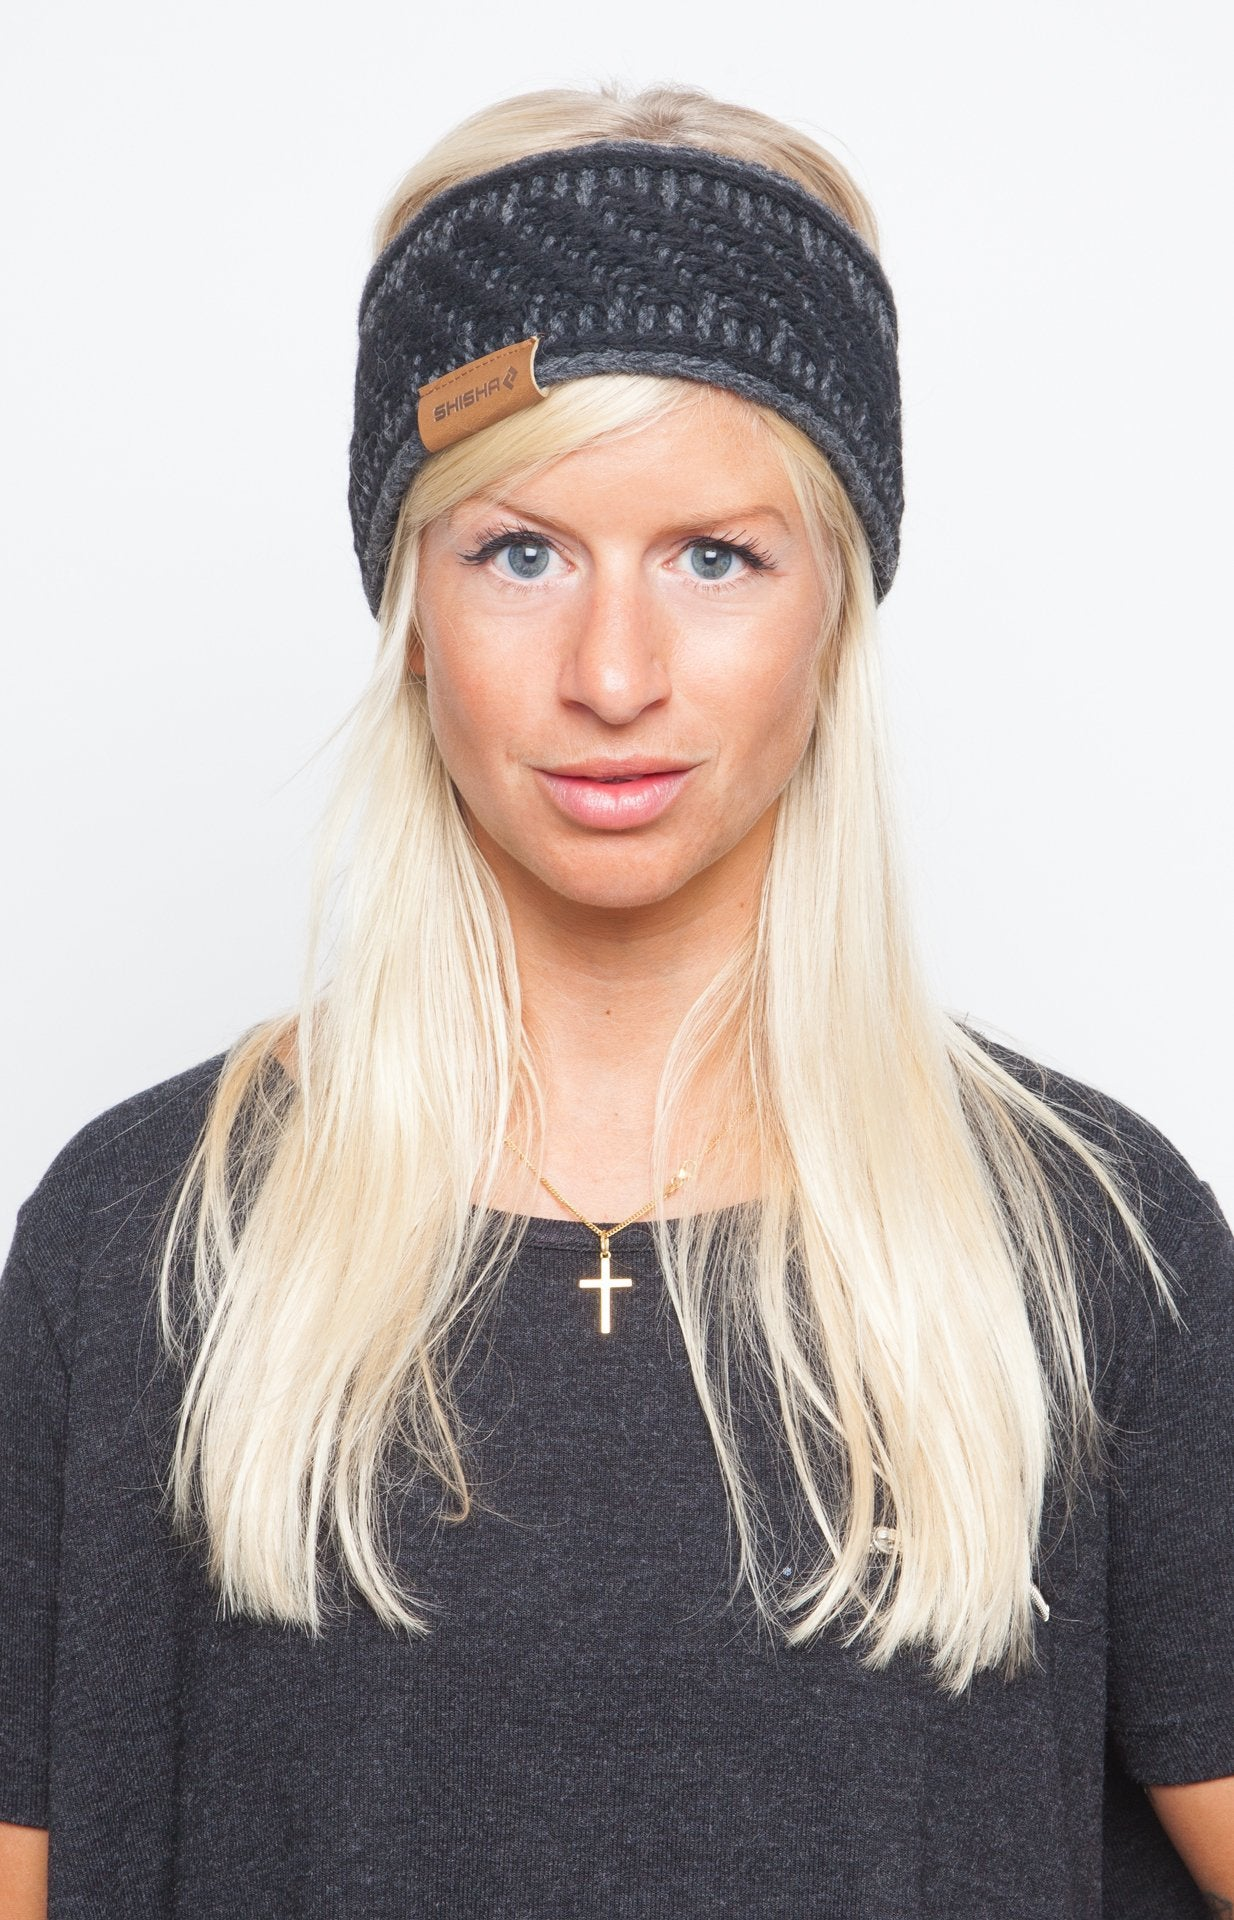 Headband STEERN Black/Anthracite